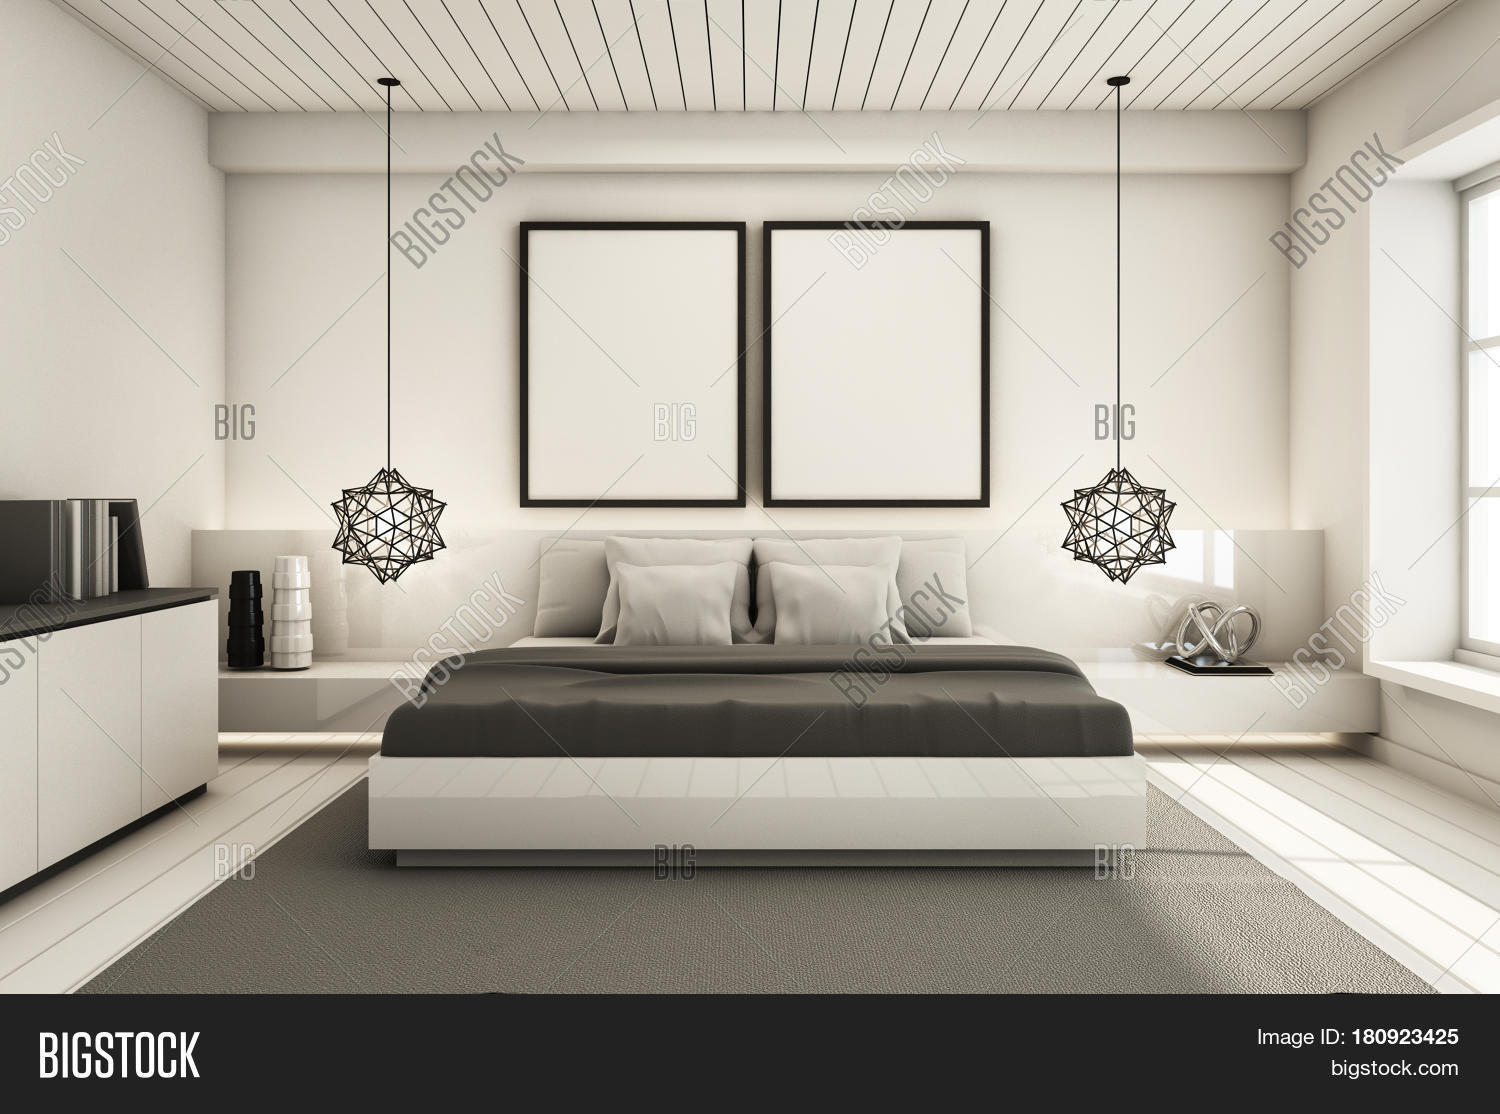 Bedroom Under Roof Image Photo Free Trial Bigstock